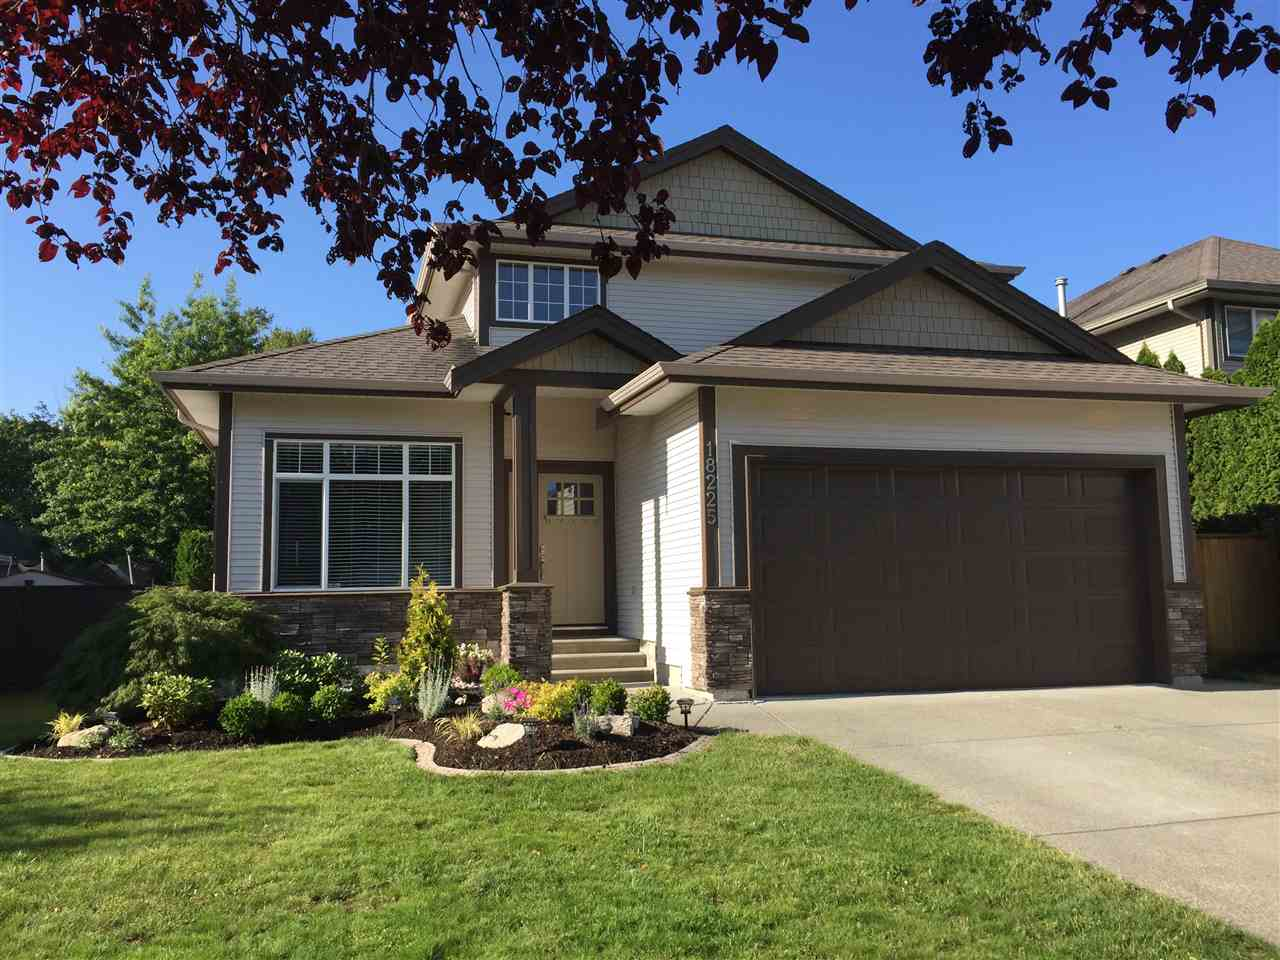 Main Photo: 18225 69 Avenue in Surrey: Cloverdale BC House for sale (Cloverdale)  : MLS® # R2188246